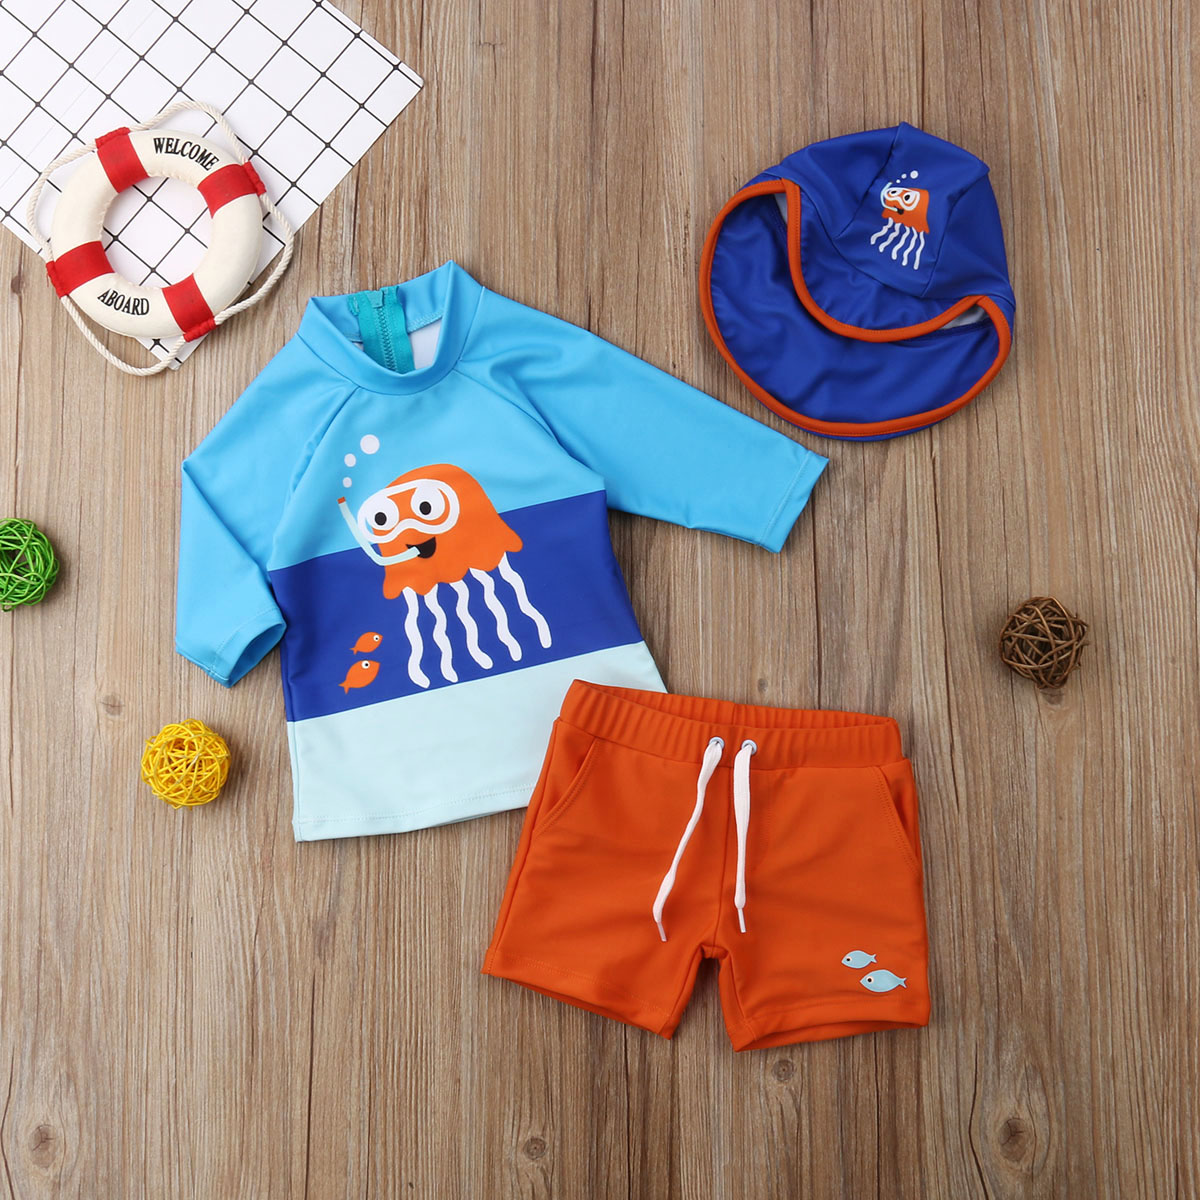 20e47e0db3f1 2019 Hot Fashion Toddler Kids Baby Boys Swimwear Long Sleeve Cartoon ...